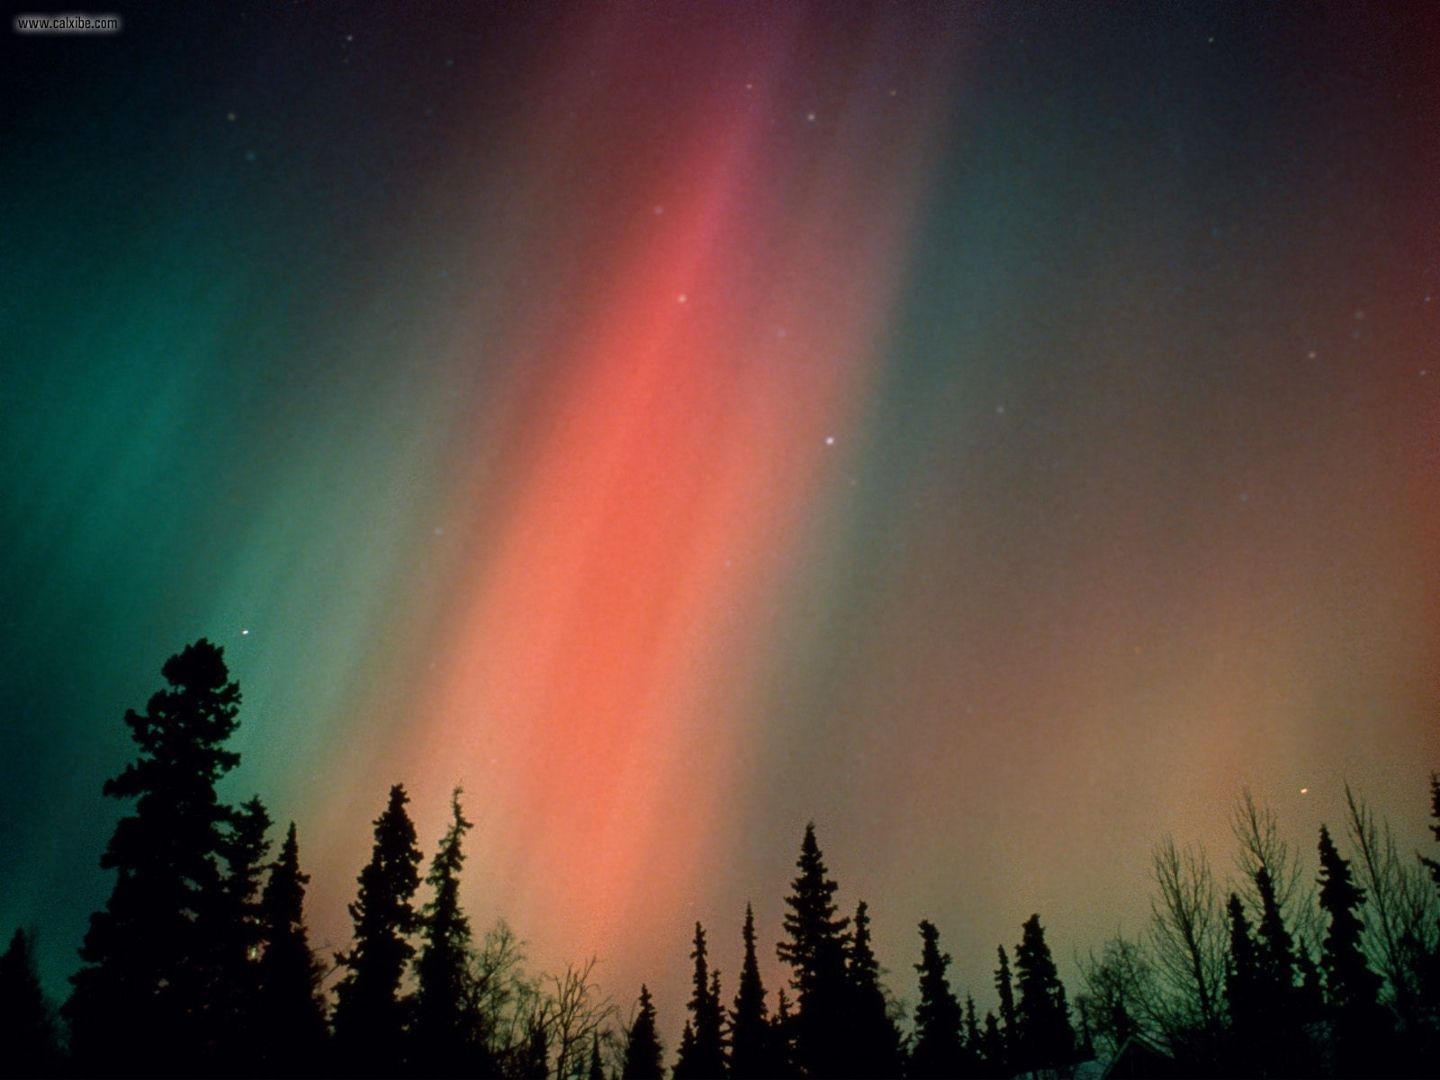 Aurora Borealis Wallpaper 1080p HD wallpaper background 1440x1080